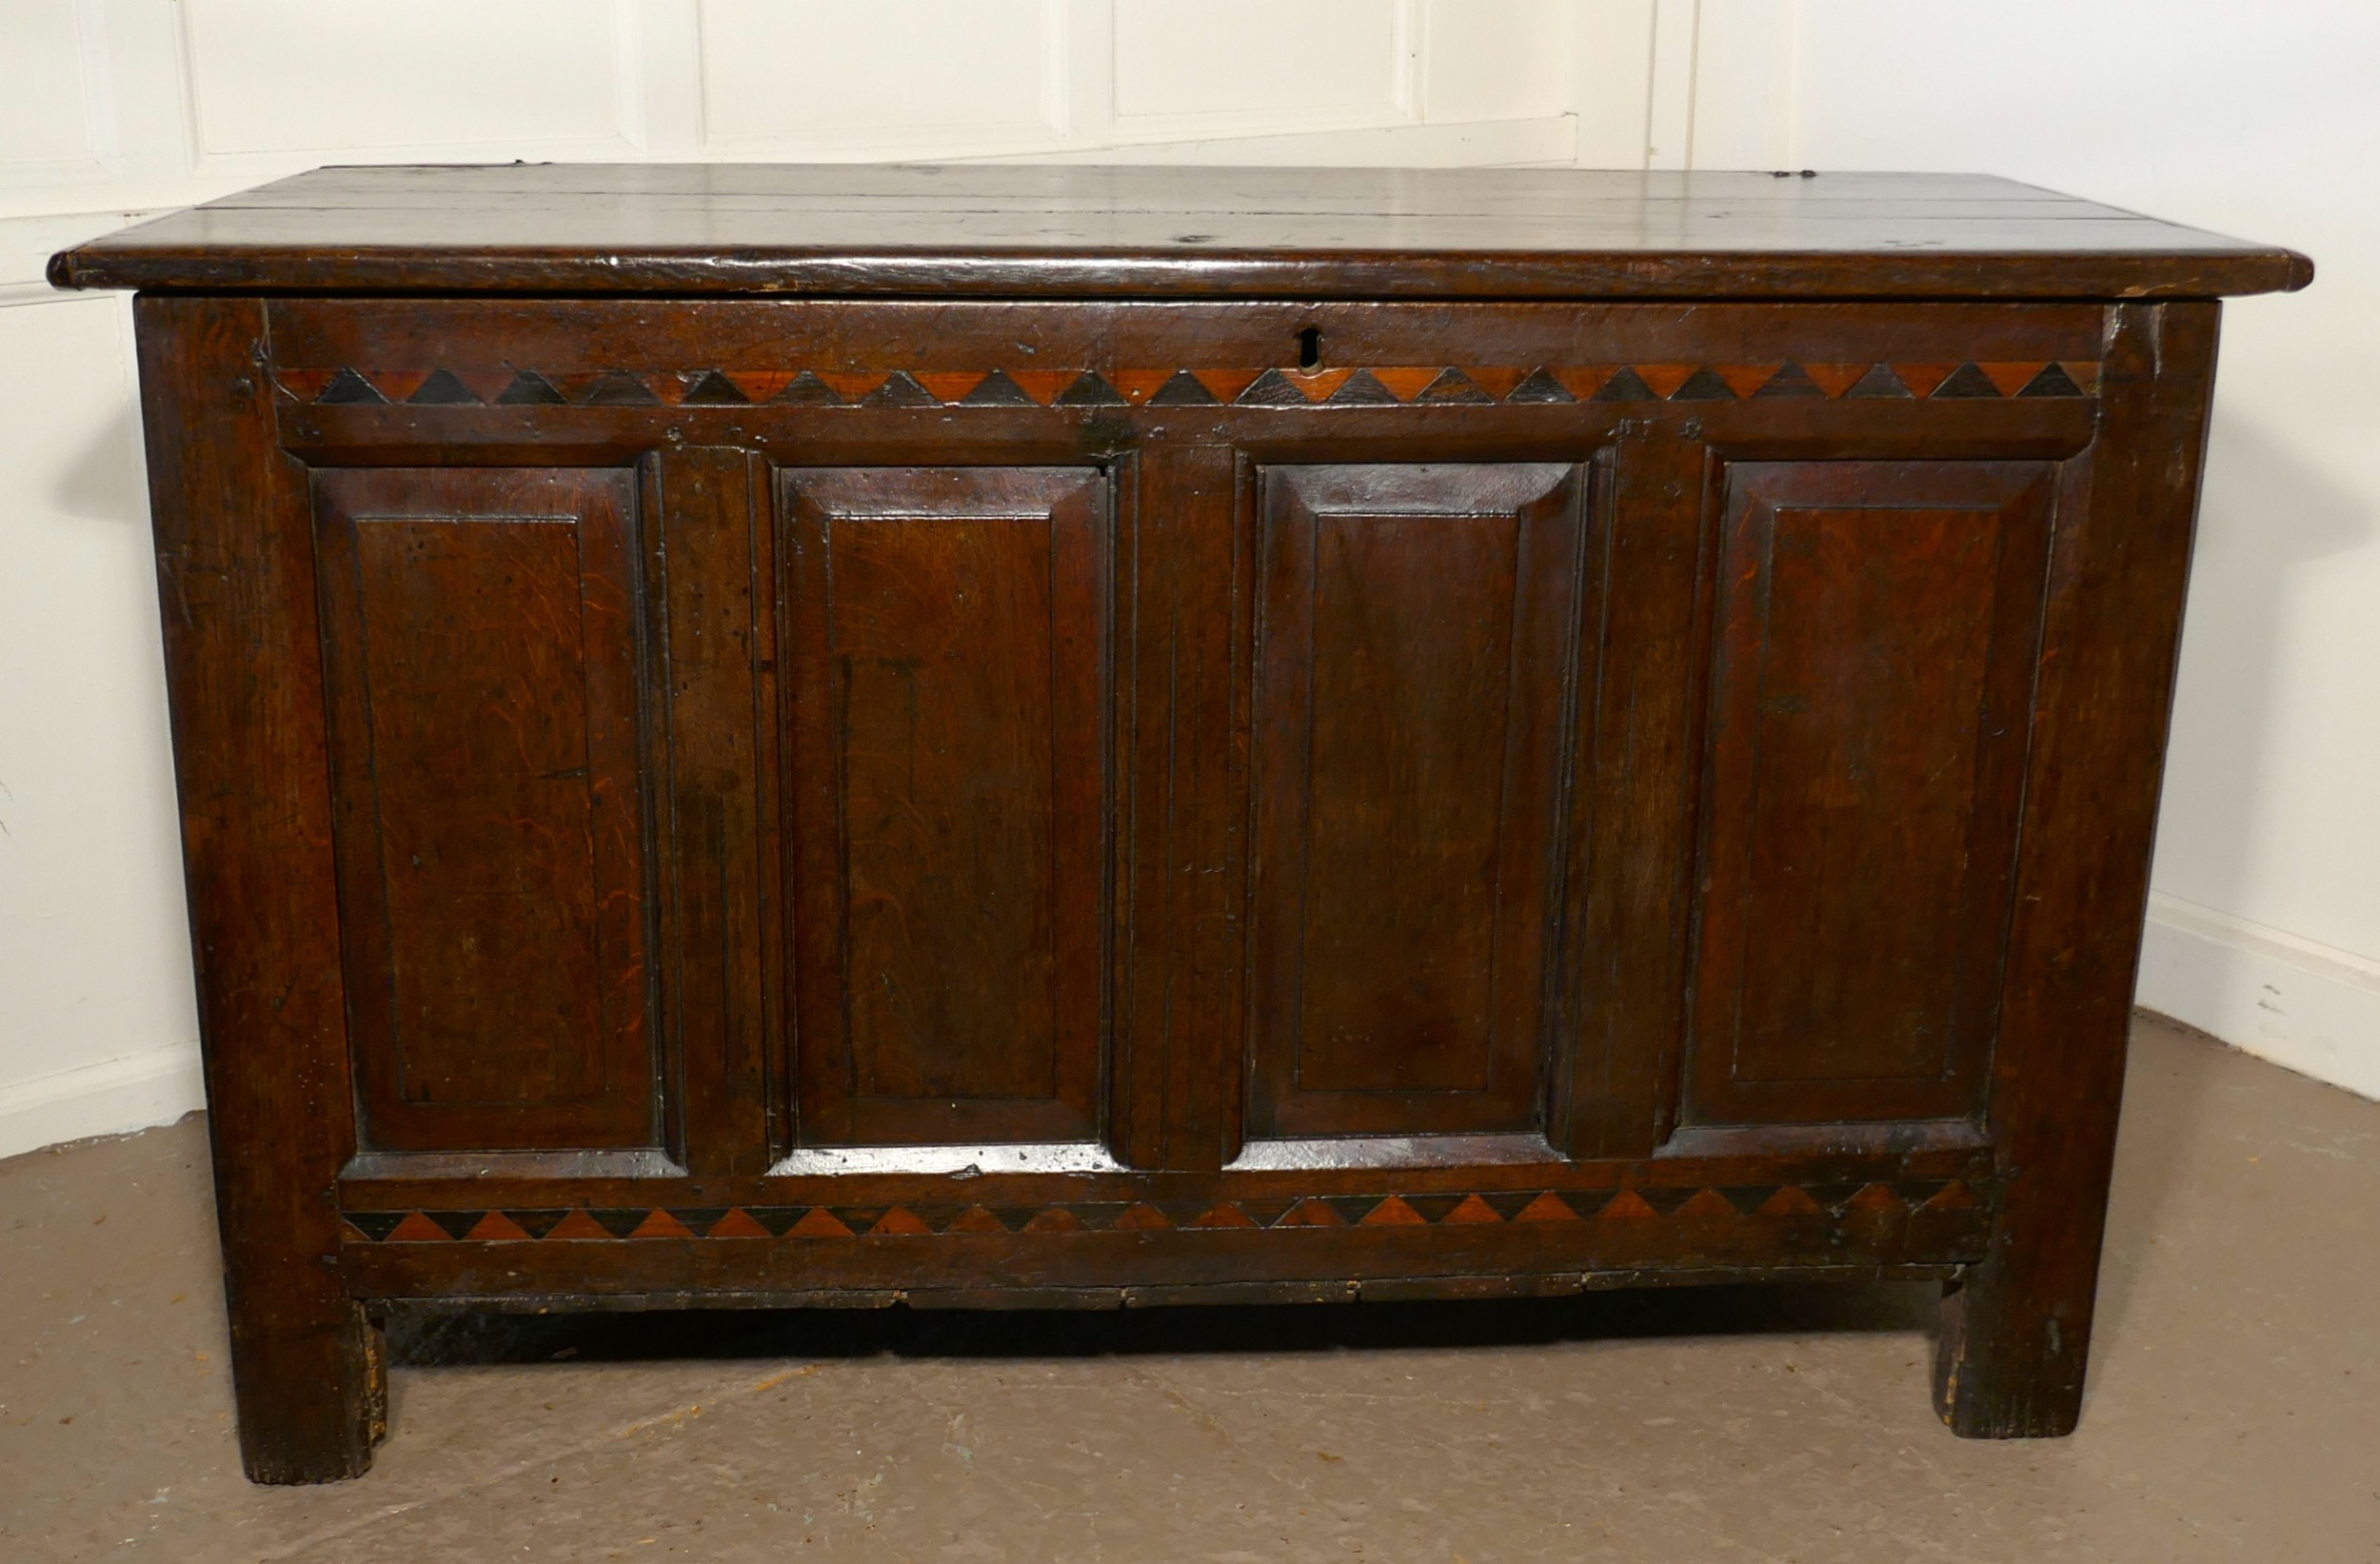 a large 17th century inlaid panelled oak coffer